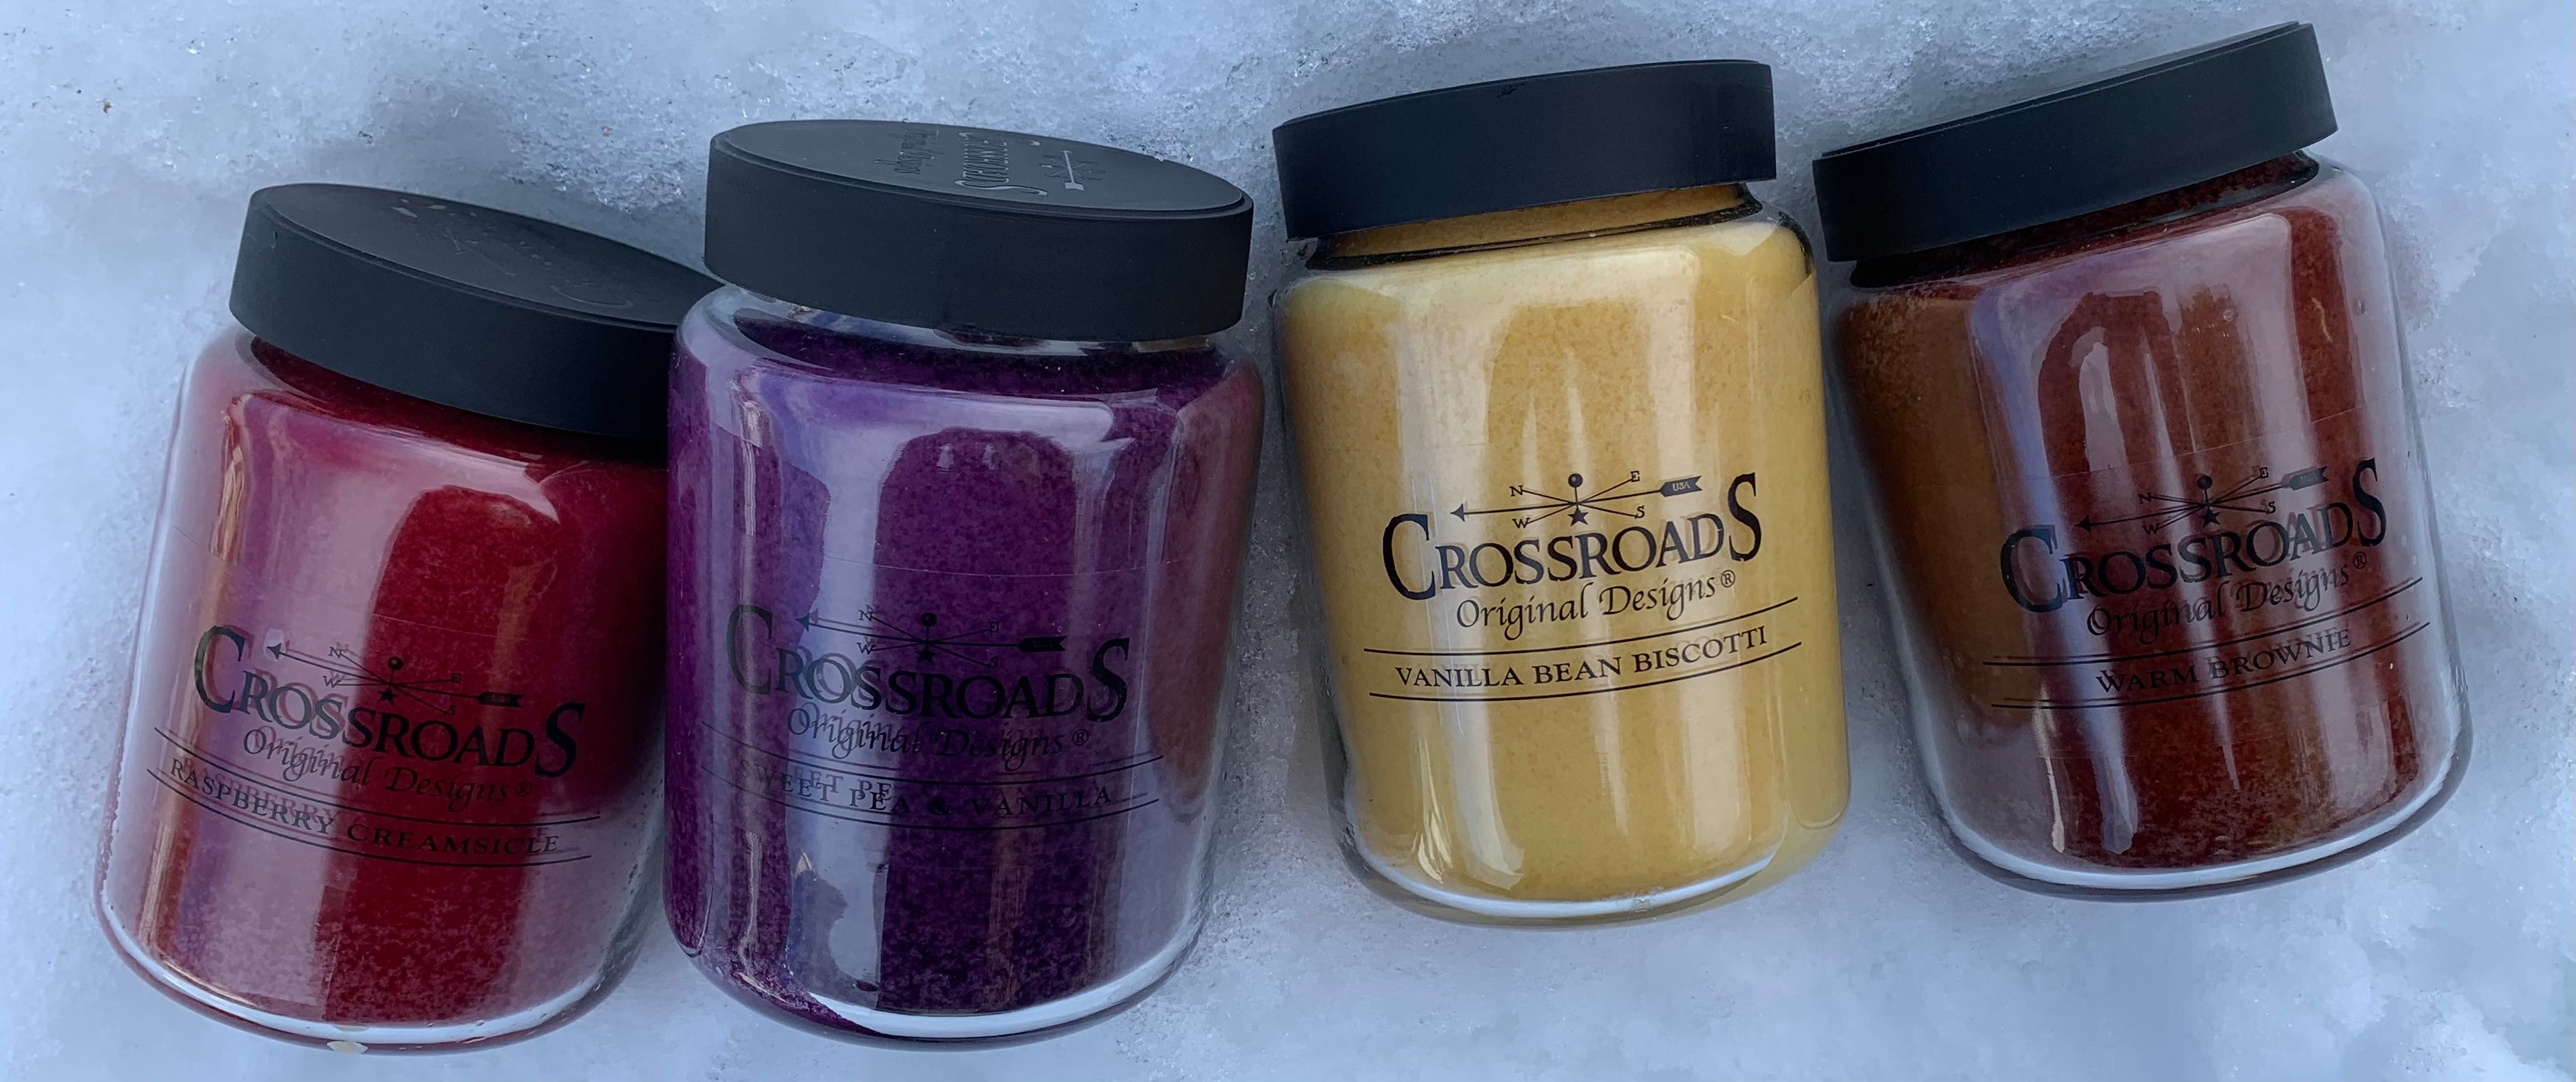 Crossroads Candle